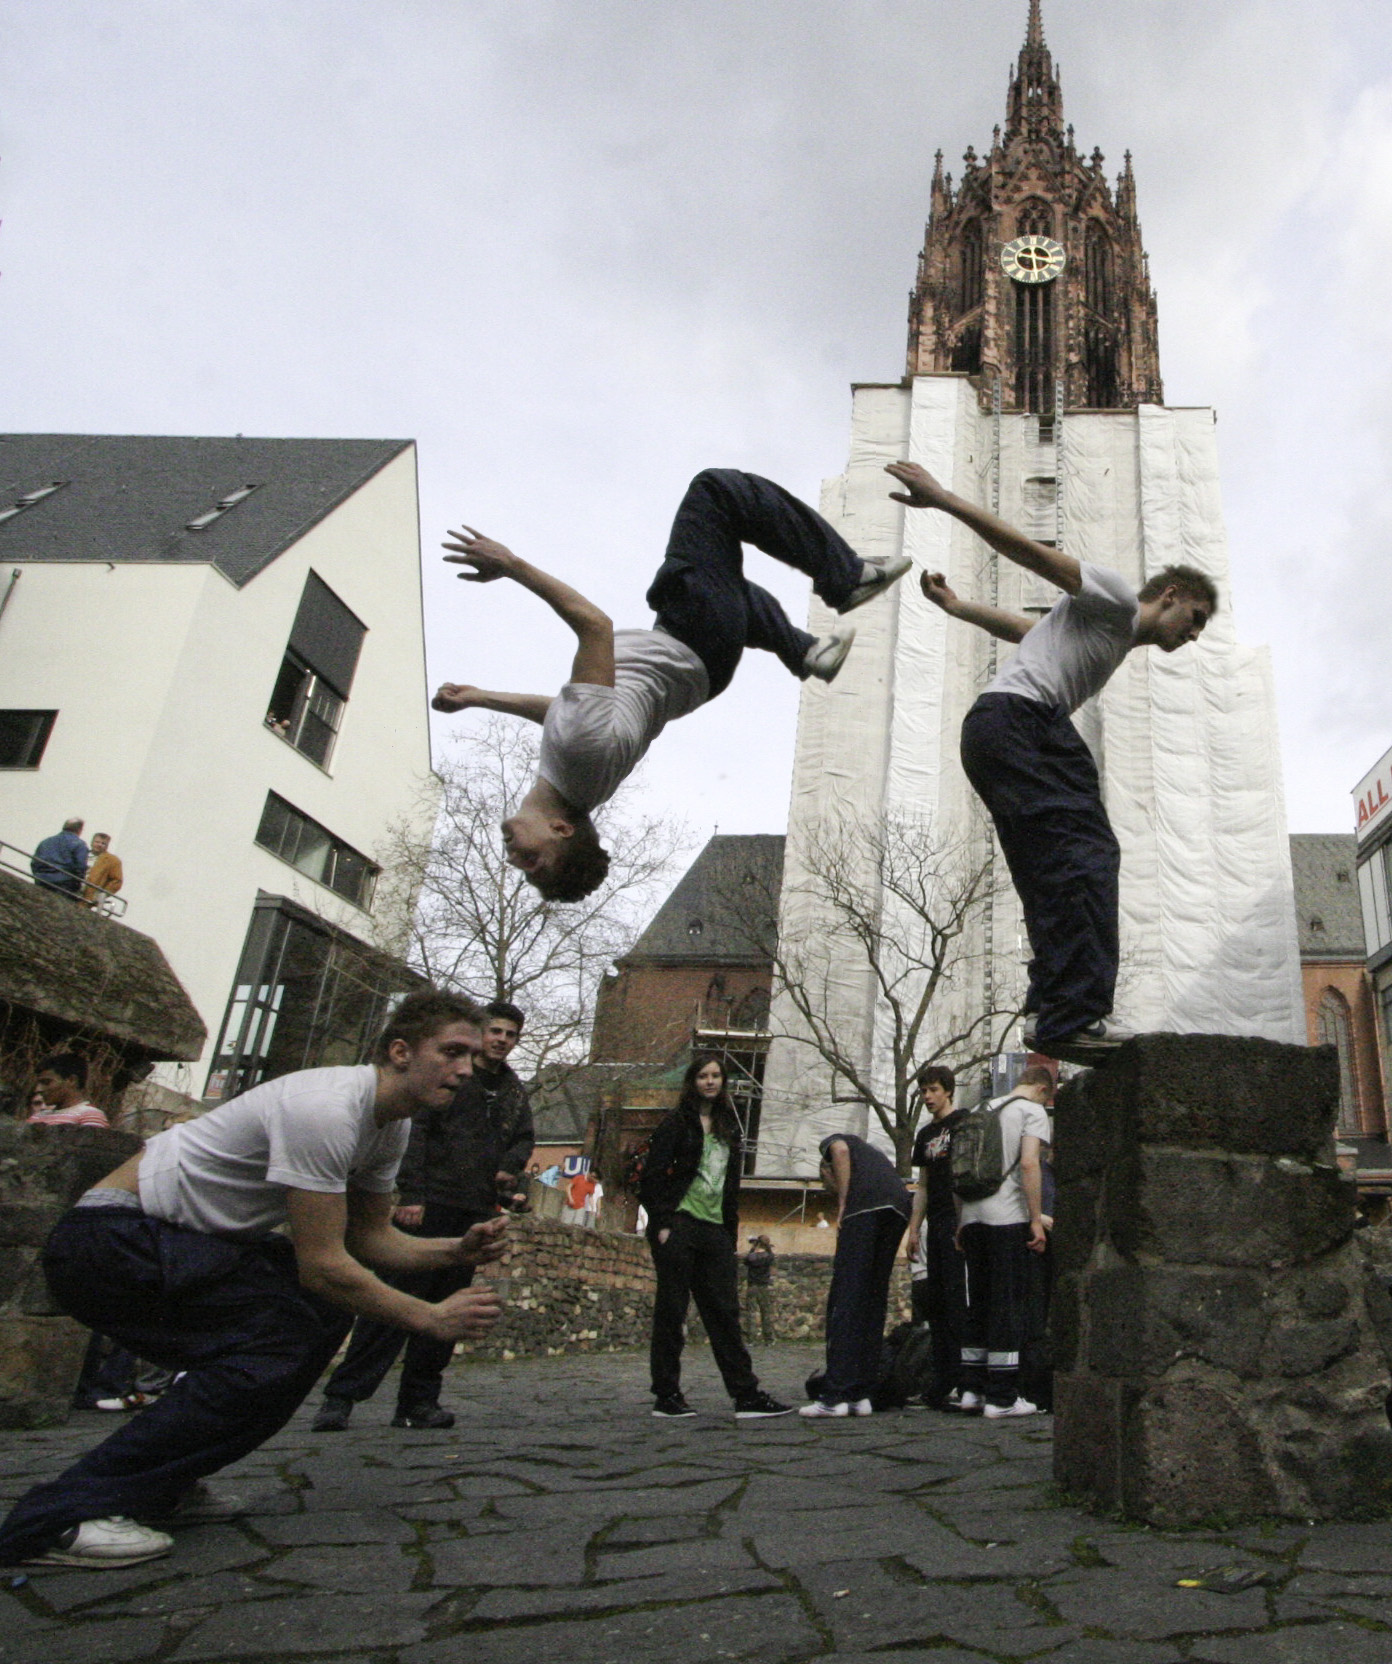 http://upload.wikimedia.org/wikipedia/commons/d/da/Parkour_Frankfurt.jpg